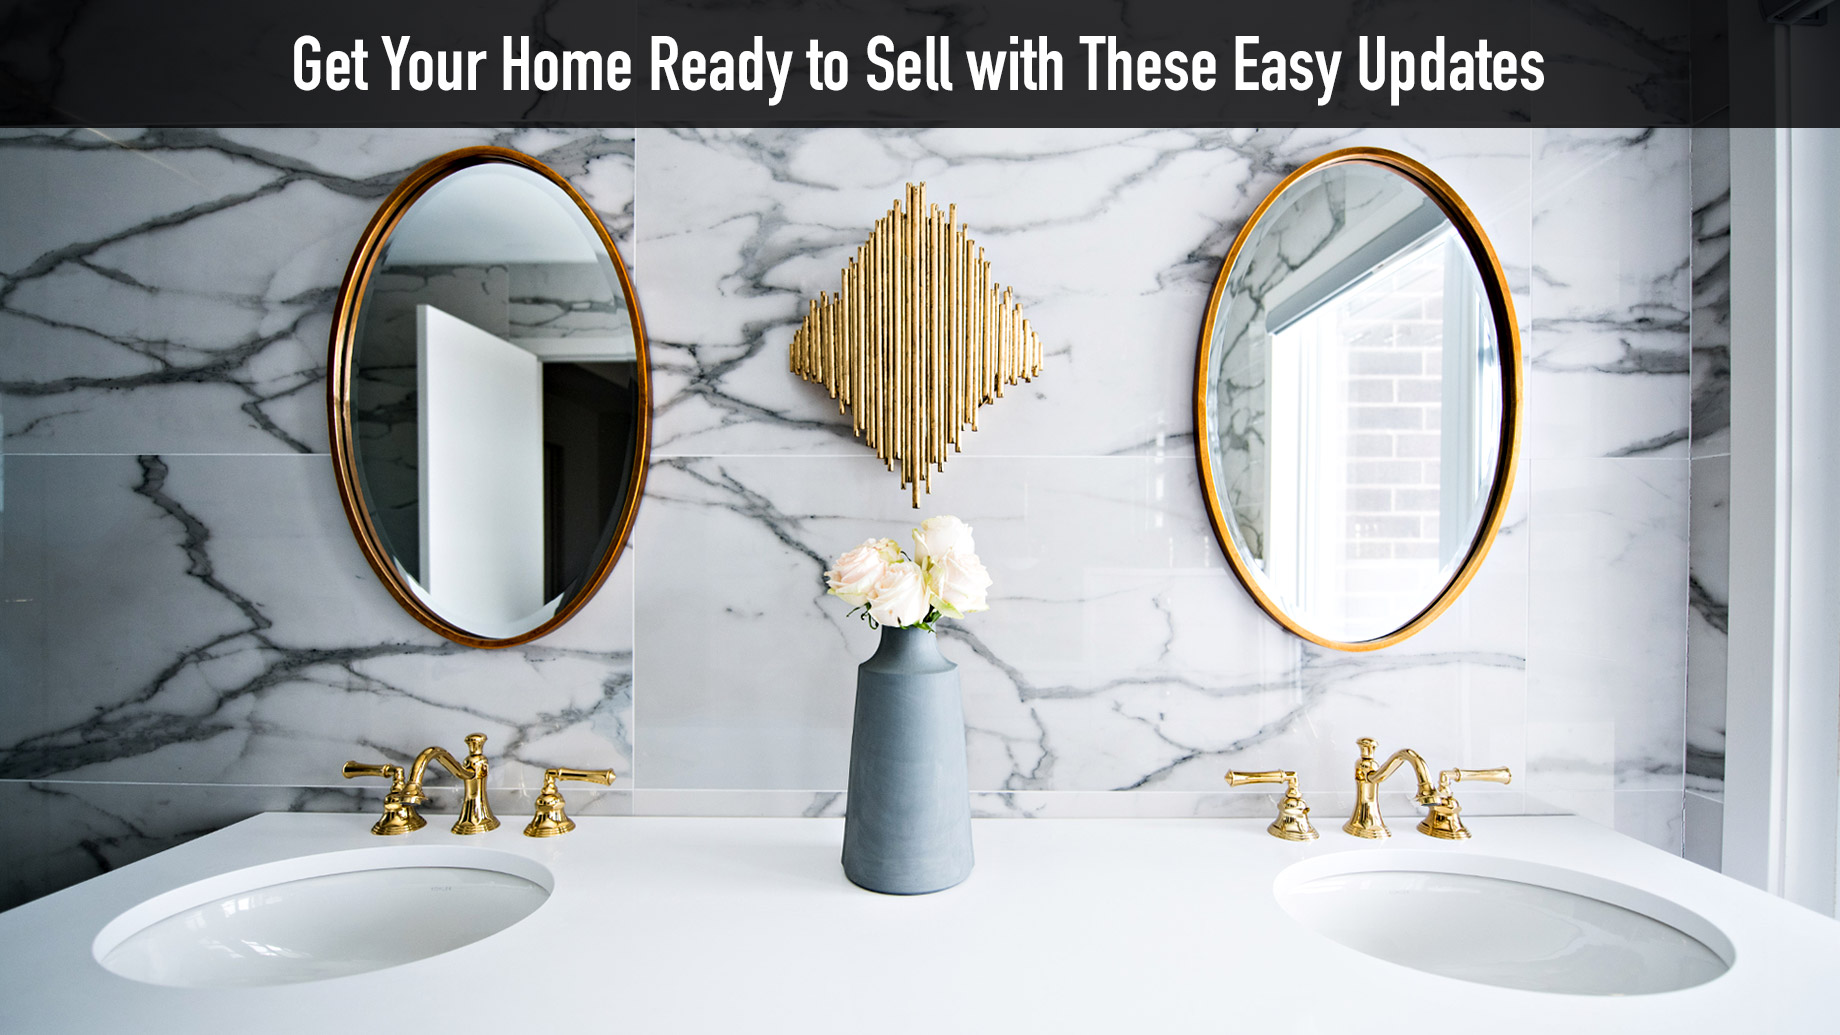 Get Your Home Ready to Sell with These Easy Updates